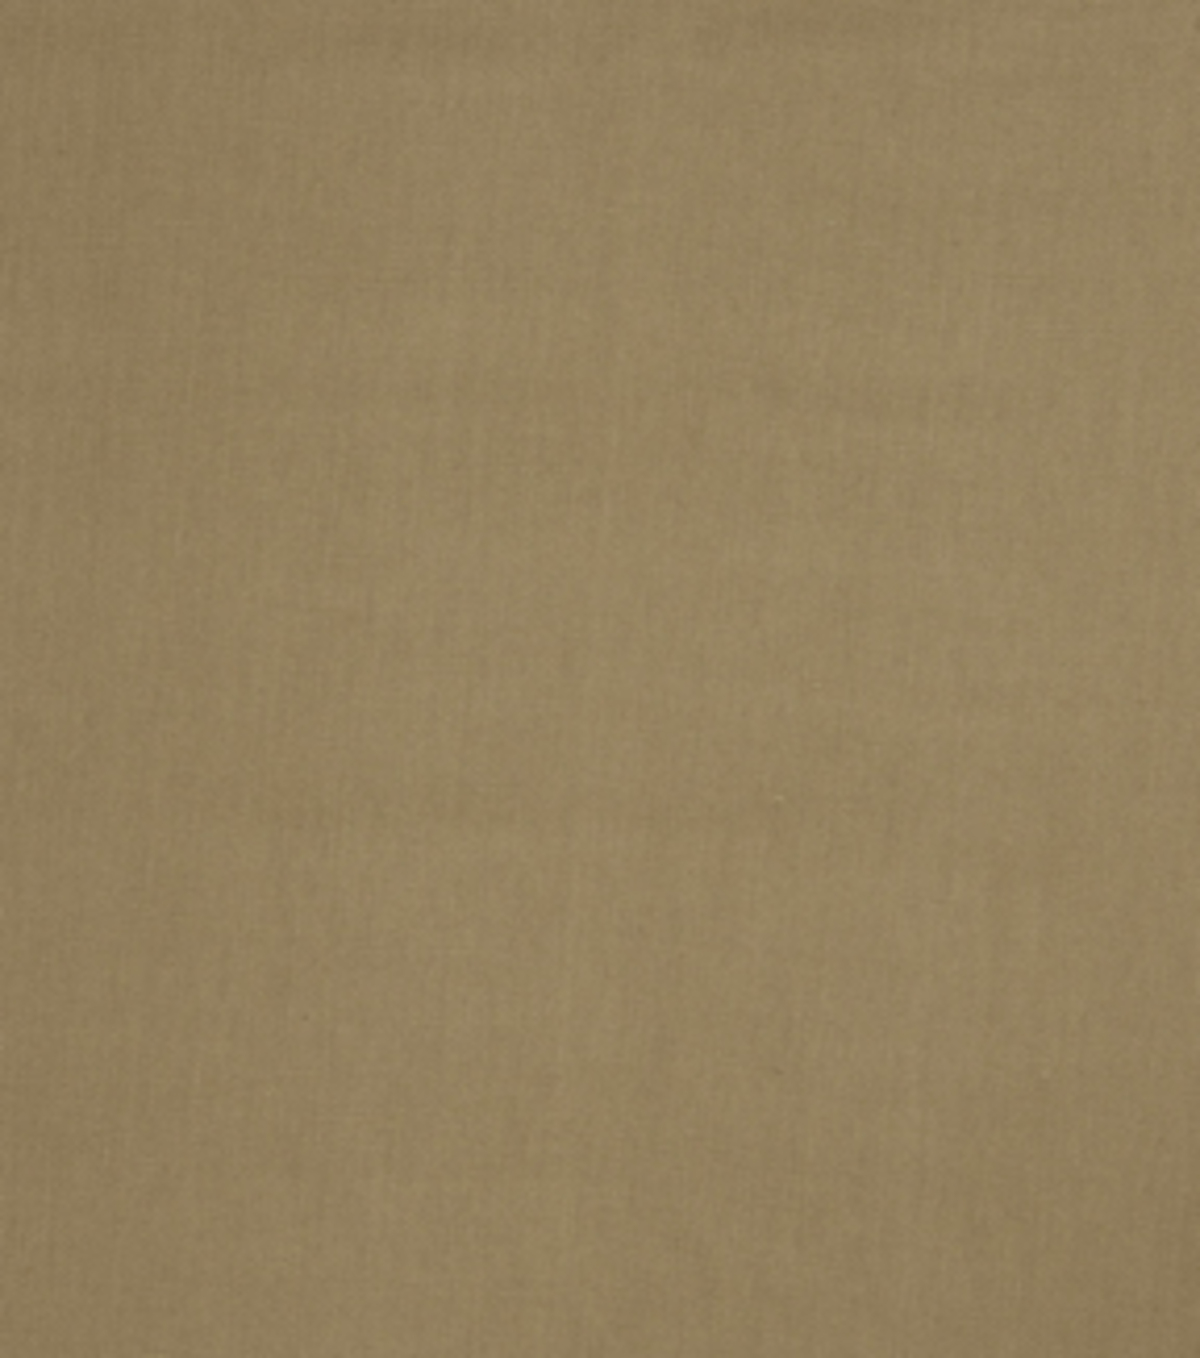 Home Decor 8\u0022x8\u0022 Fabric Swatch-Eaton Square Croissant Cocoa